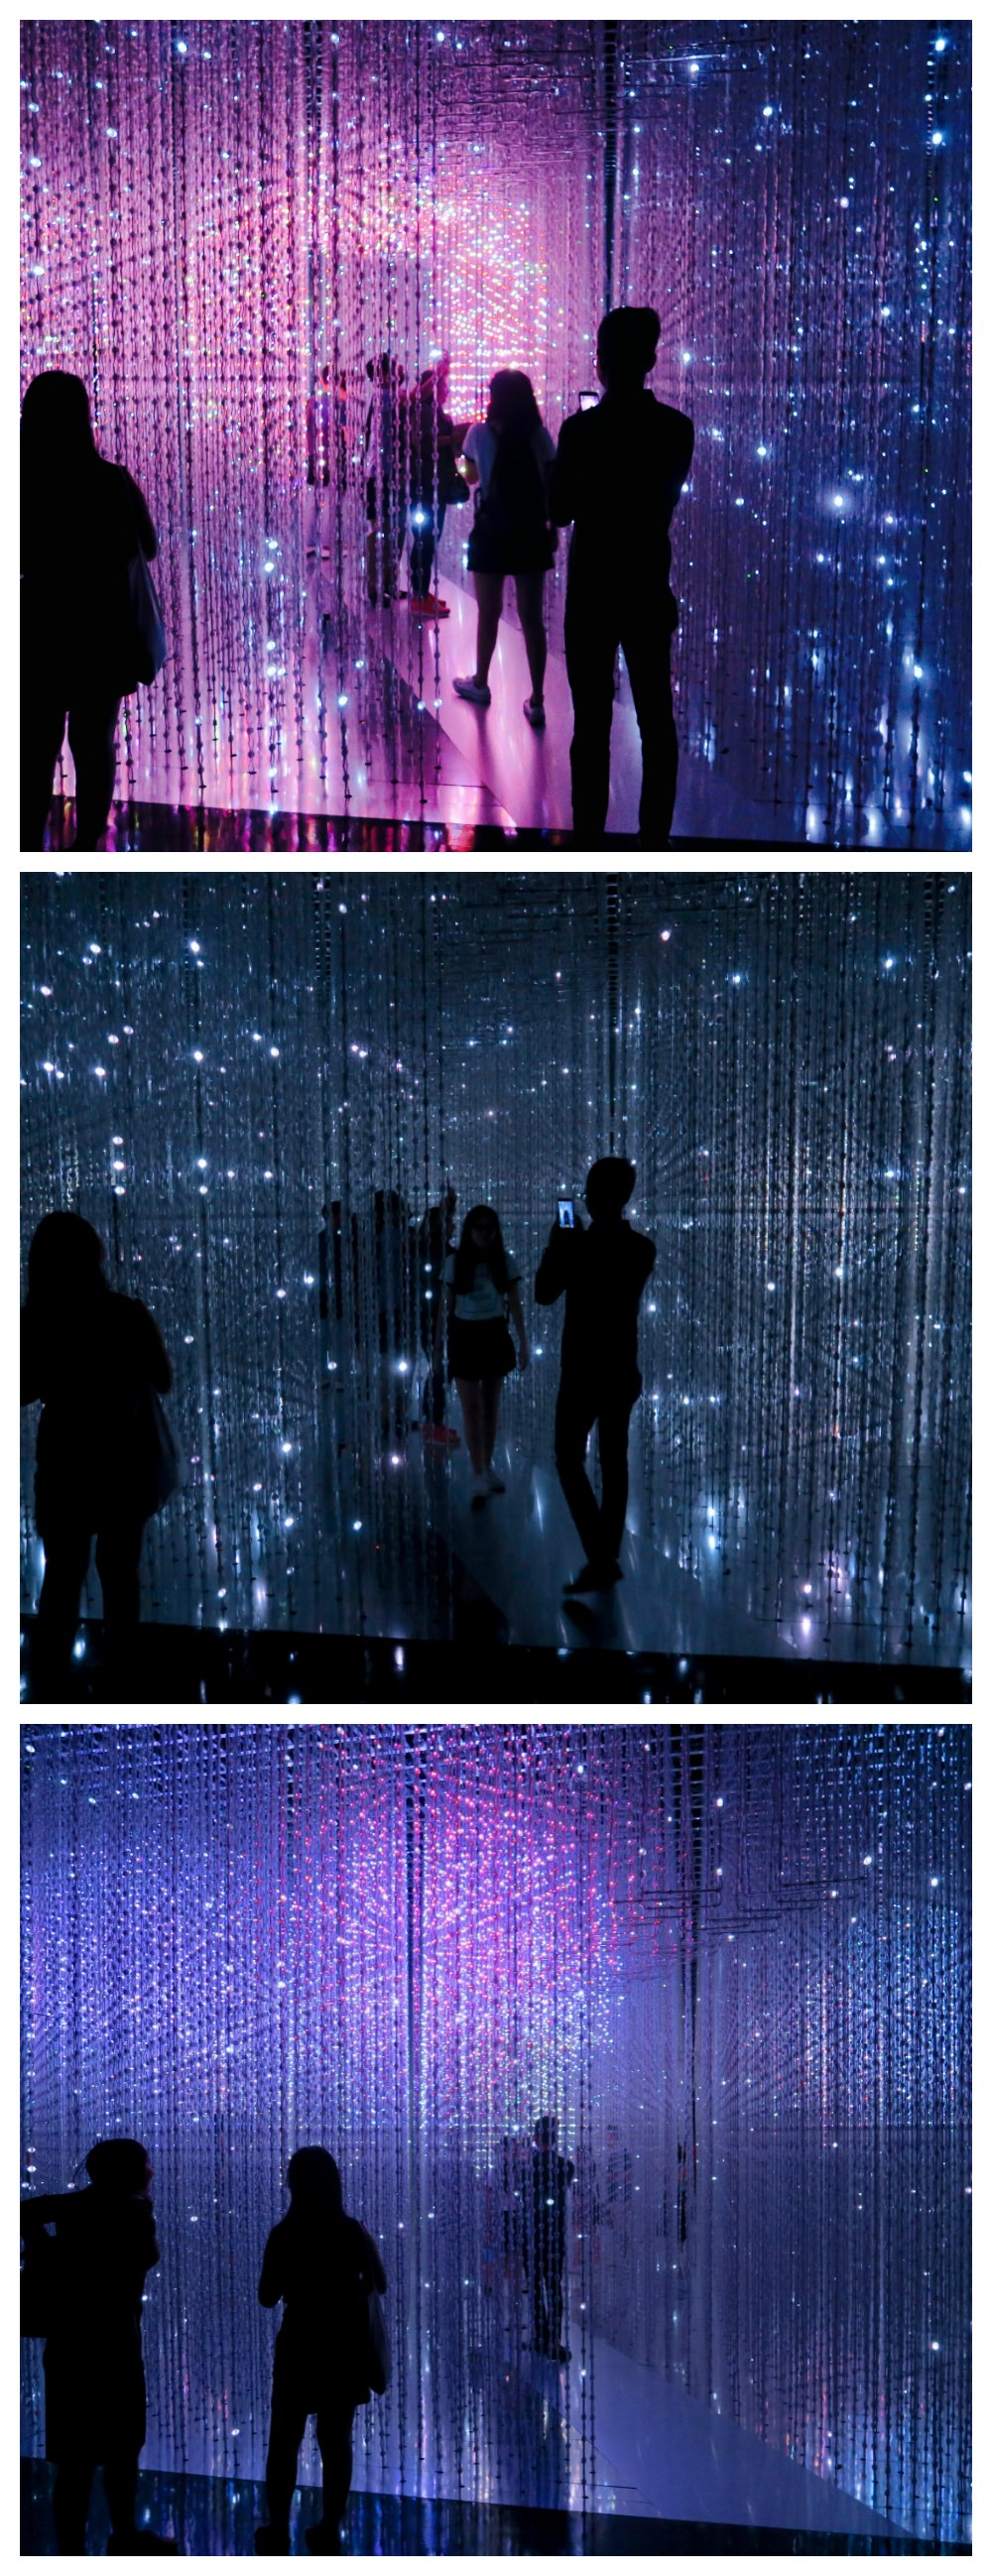 Group of visitors of Crystal Universe taking pictures |curlytraveller.com